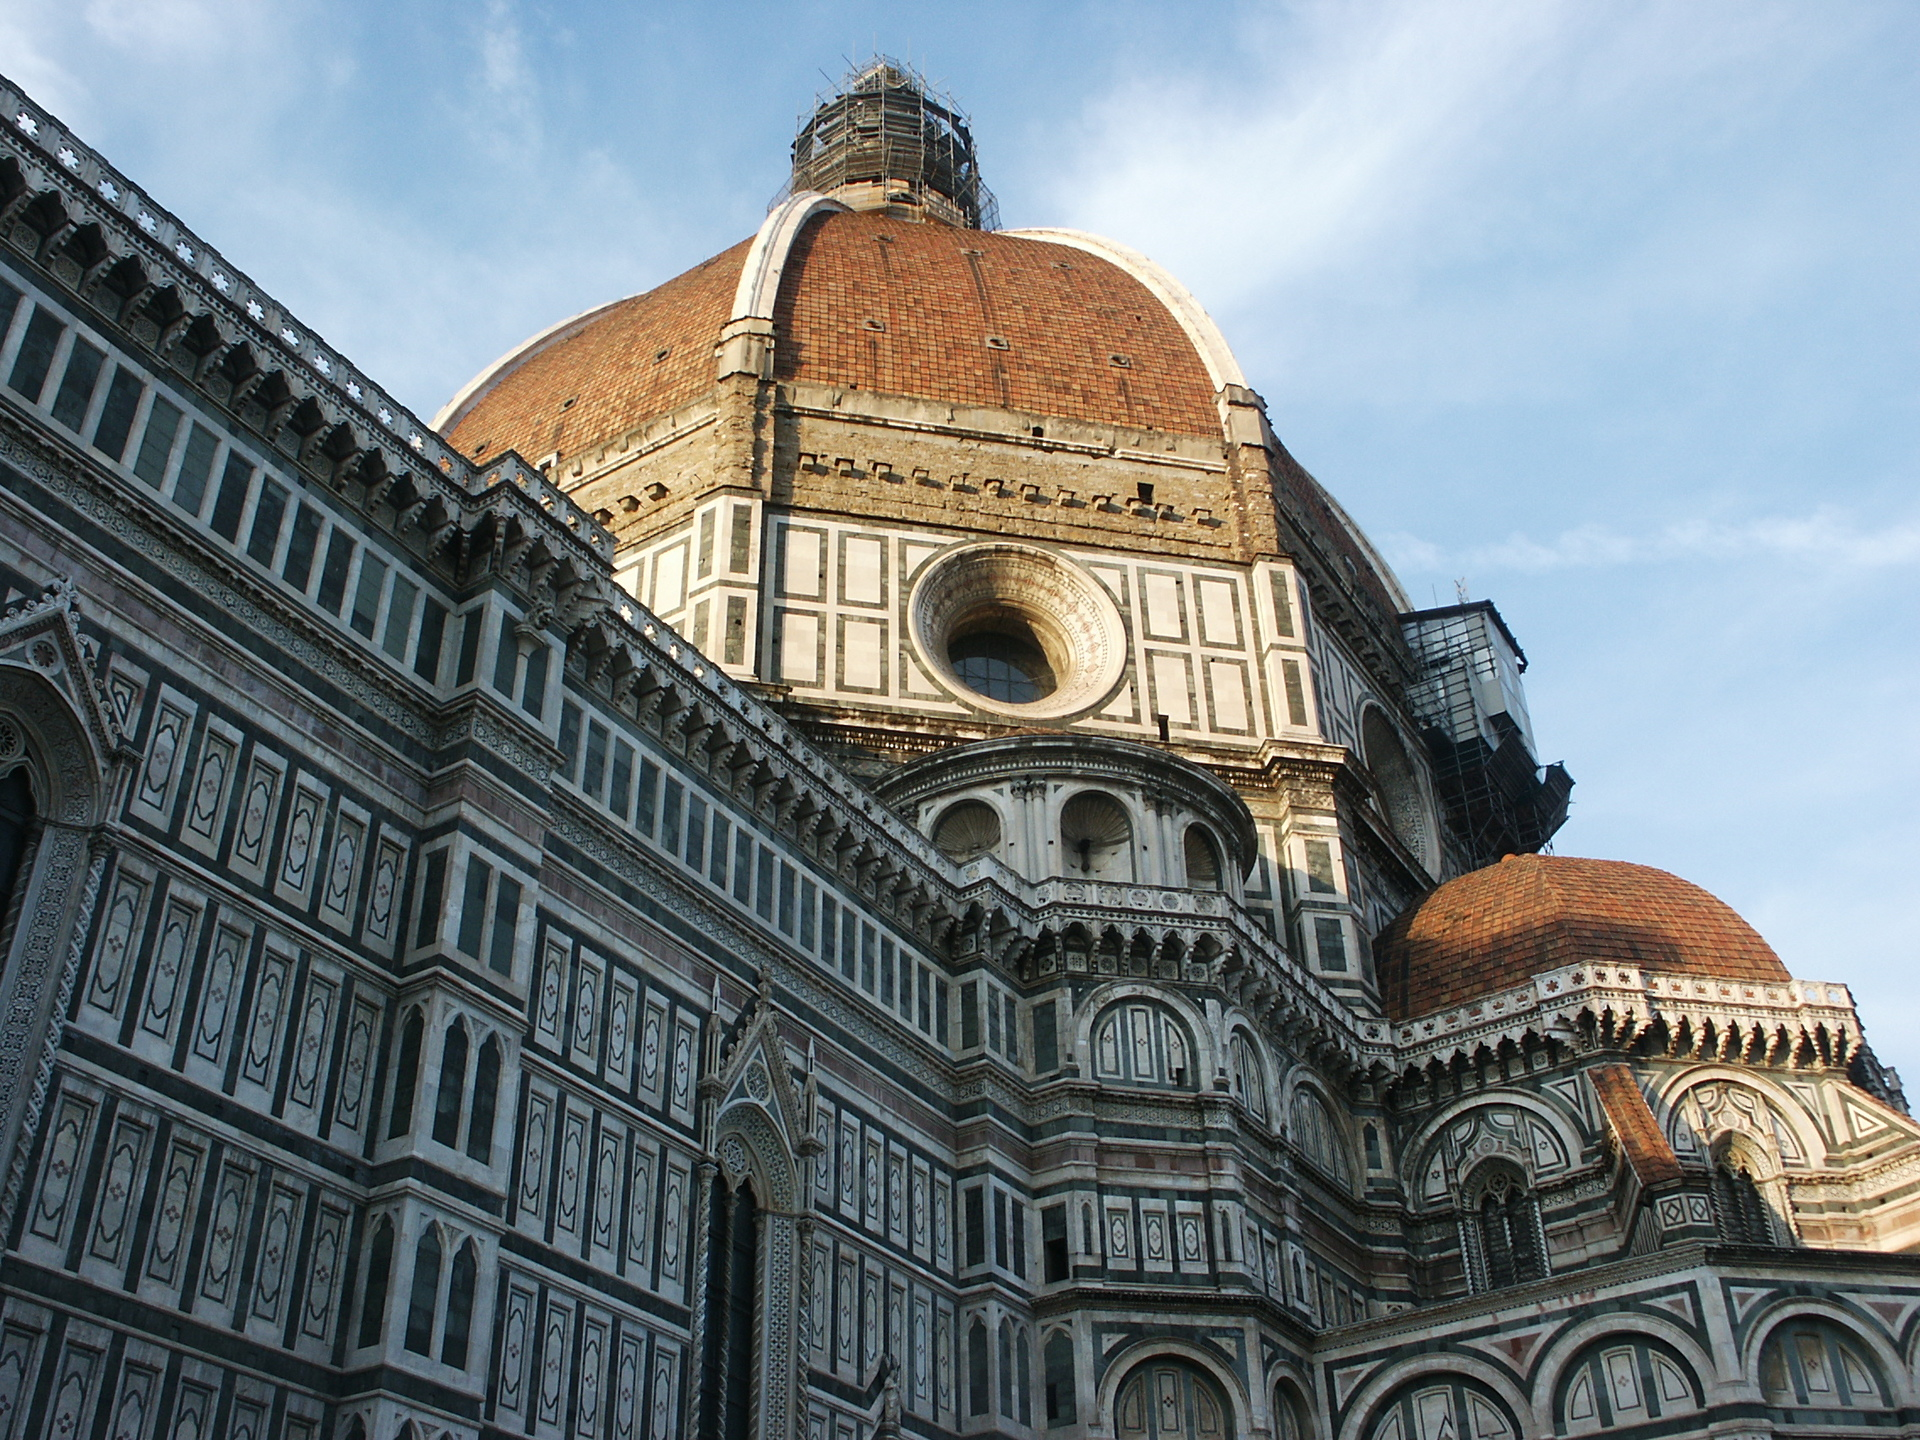 Italy - Travel Bucket List Countries